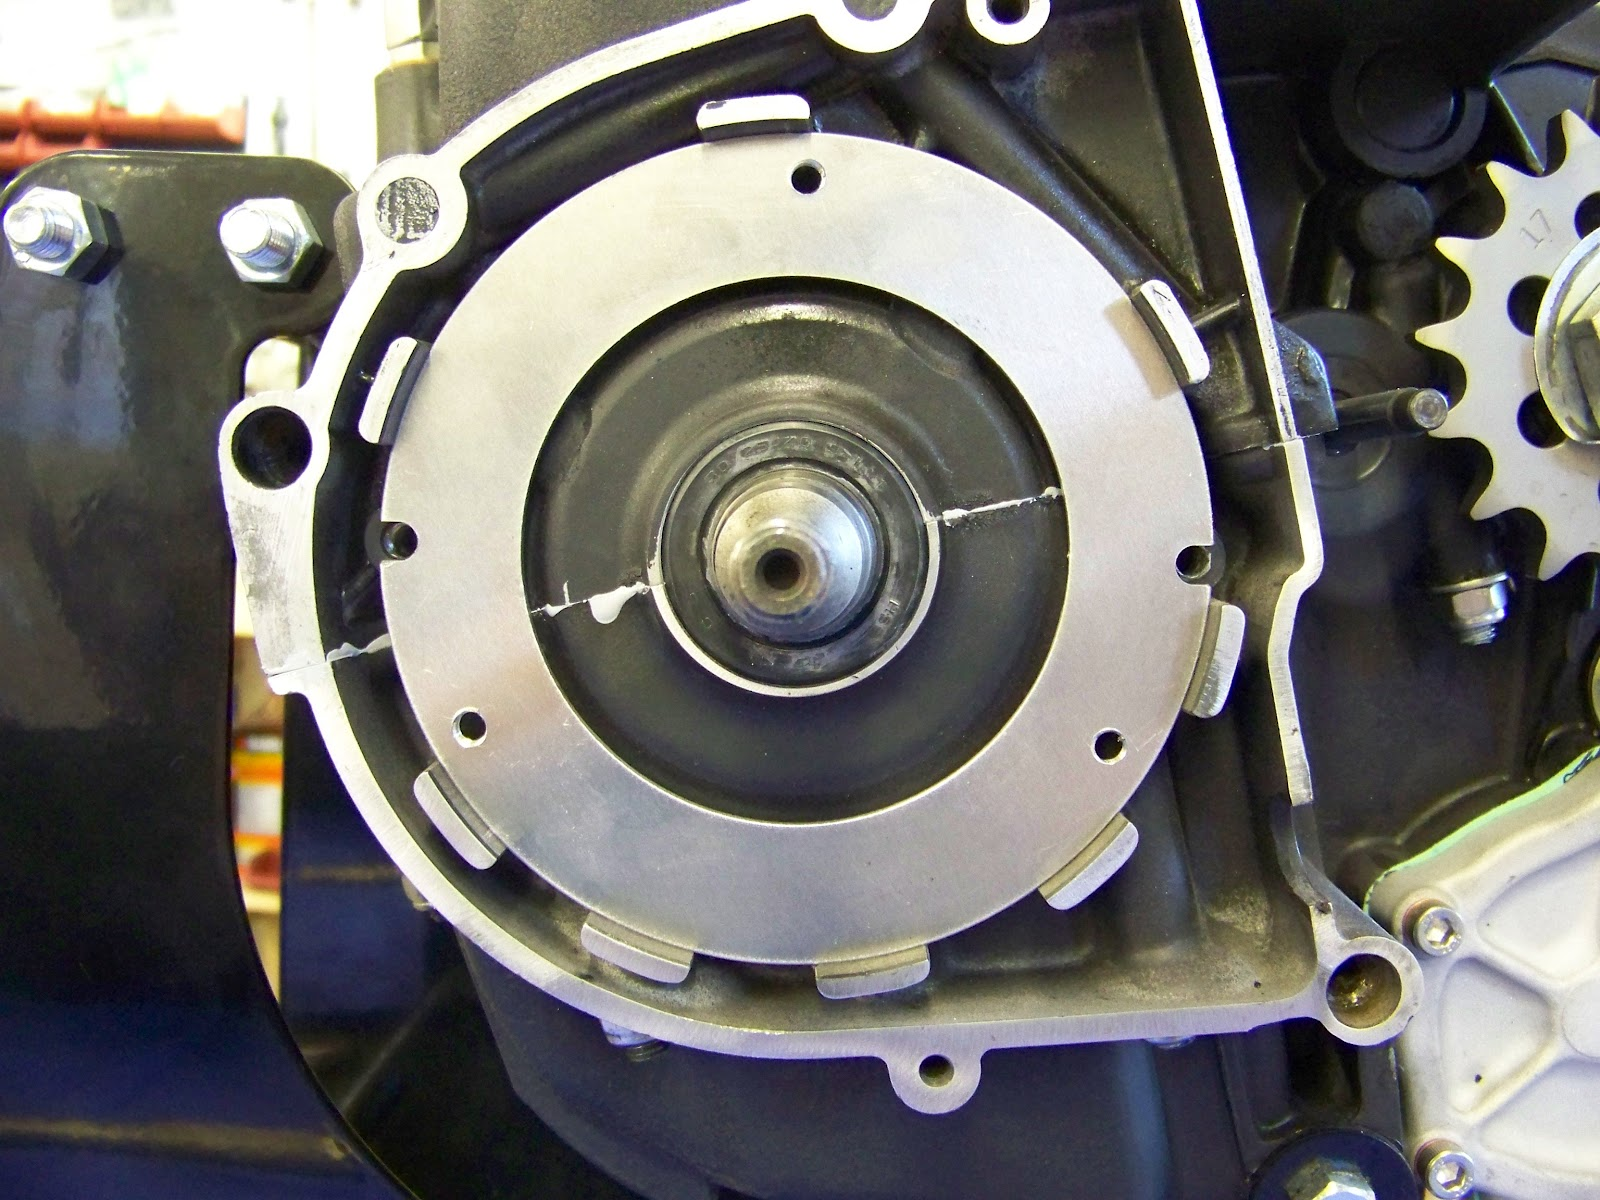 How To Install Your Hughs Handbuilt Pma System On Xs650 1980 Cdi Wiring Diagram Just Like In The Picture Above Youll Want Notches Plate Line Up With Threaded Bosses Engine Cases Then Make Sure